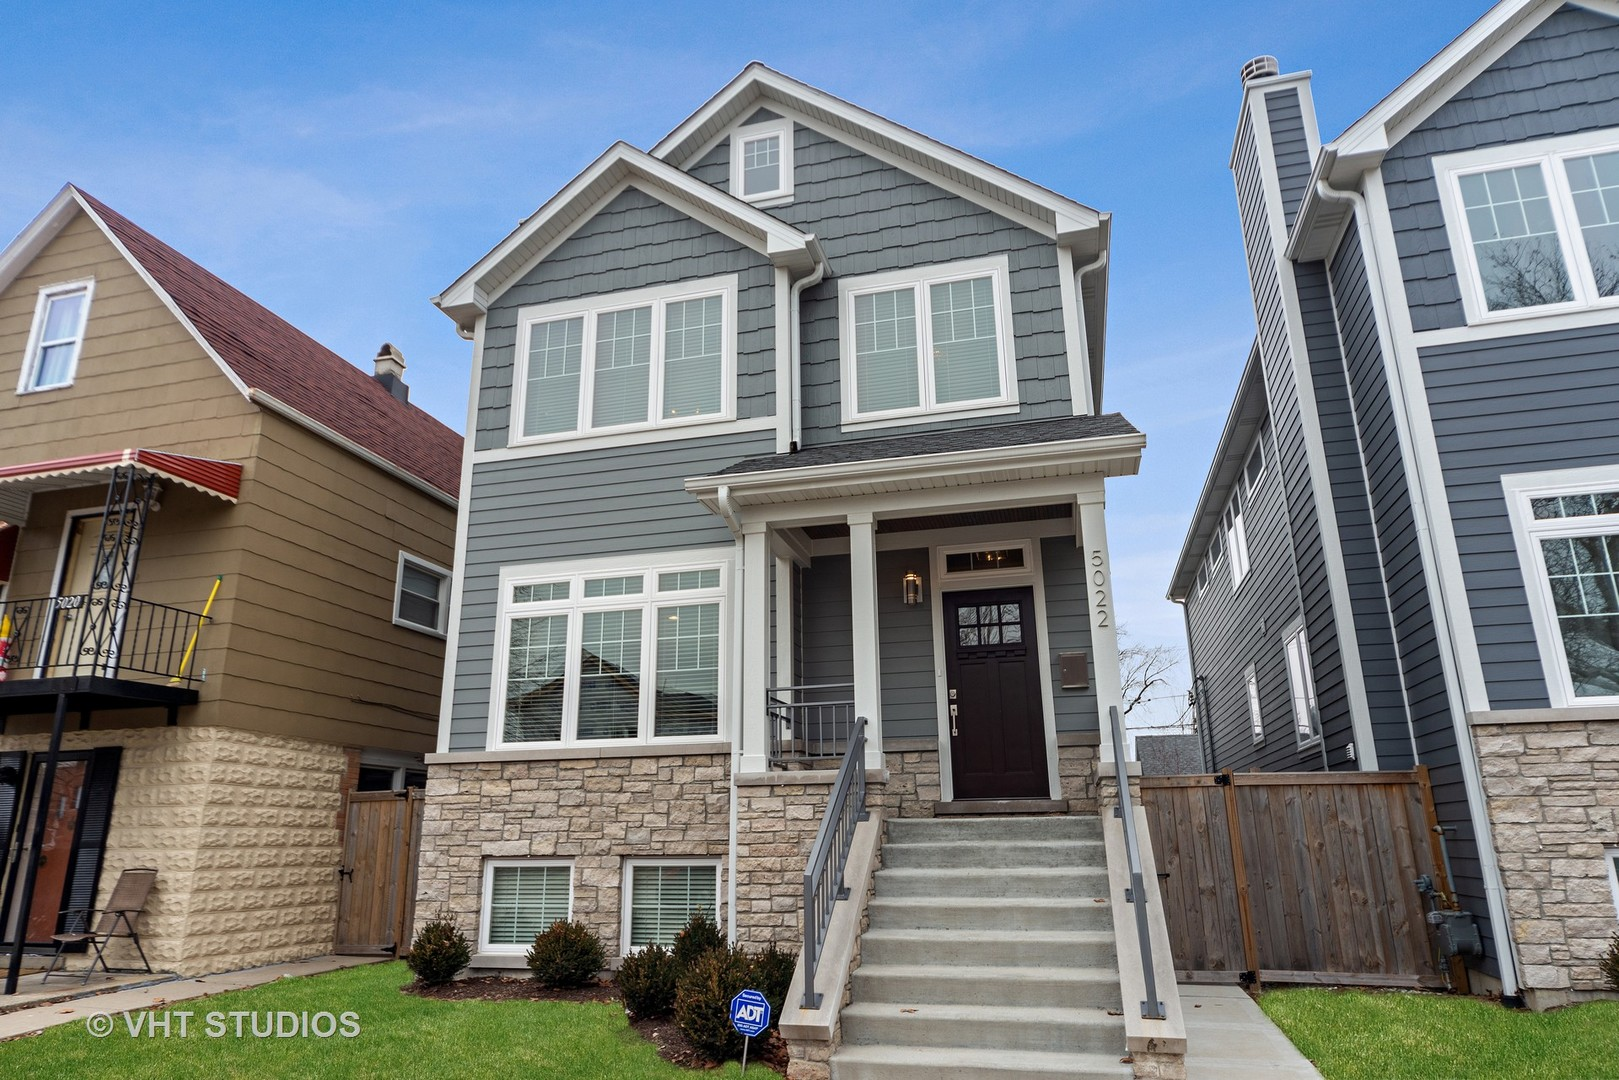 5022 NORTH KEELER AVENUE, CHICAGO, IL 60630